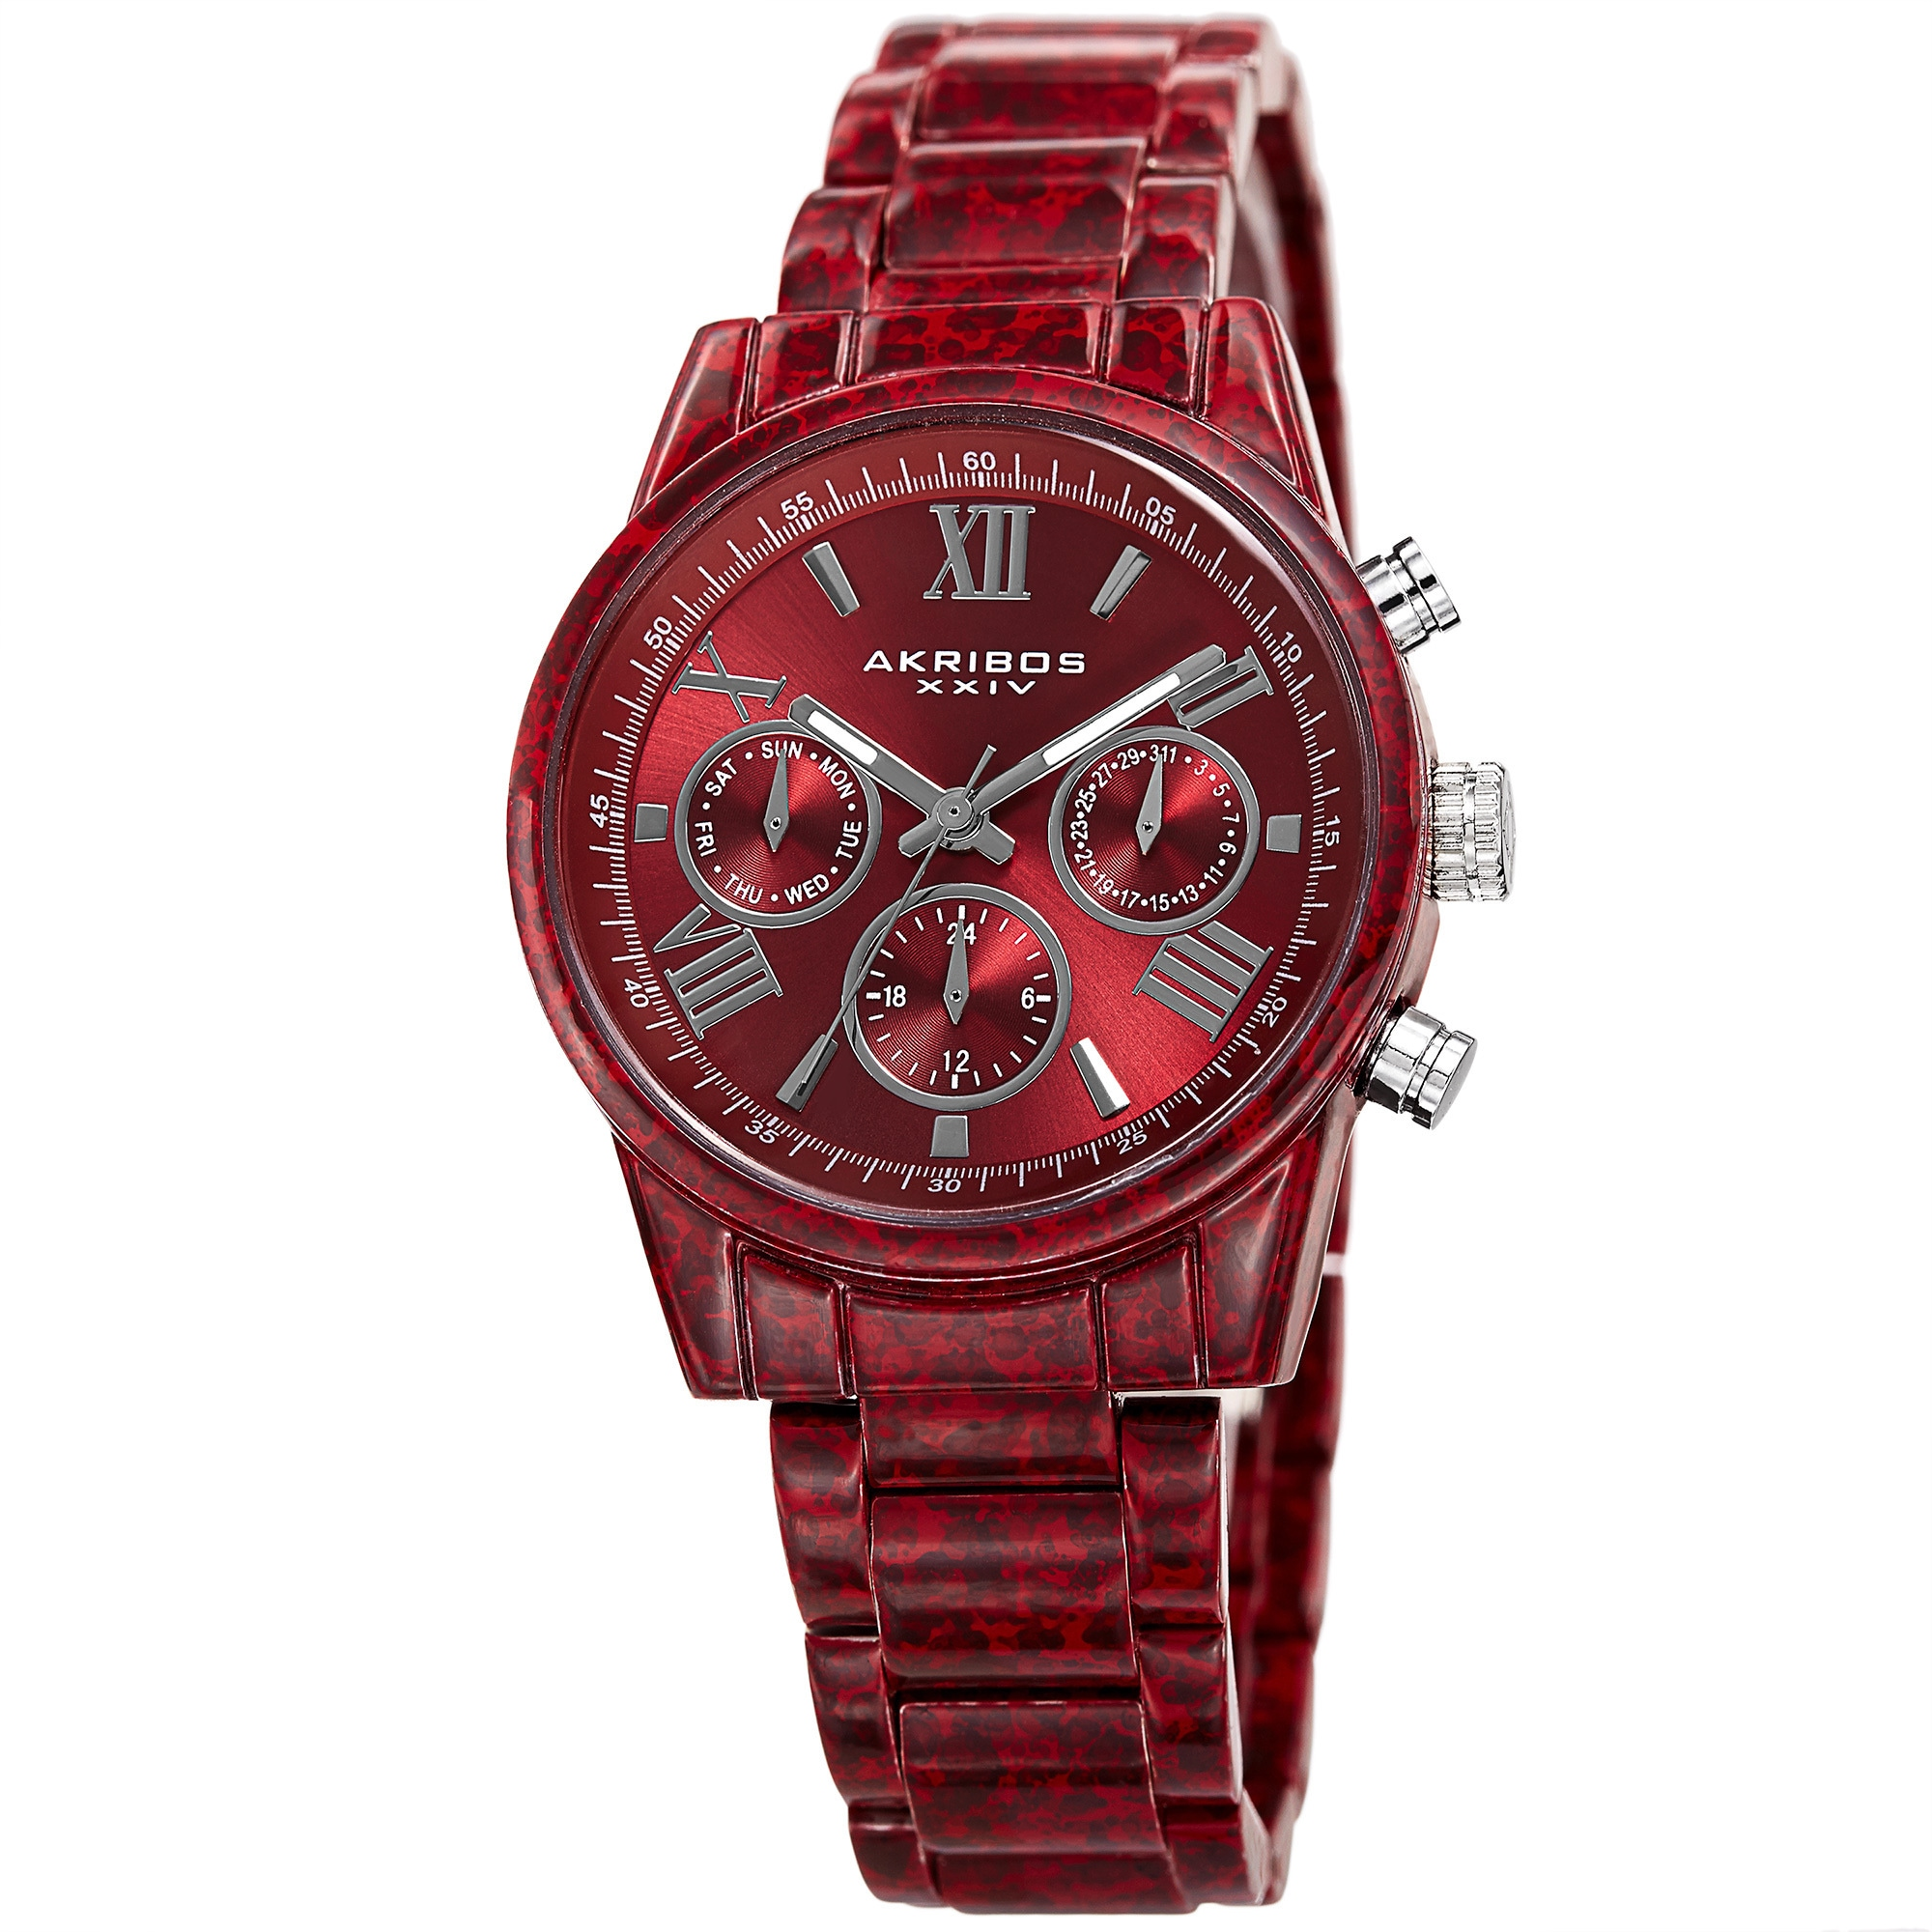 red prix singapore shop pre piguet watches edition limited royal audemars oak offshore leather oo tf owned grand